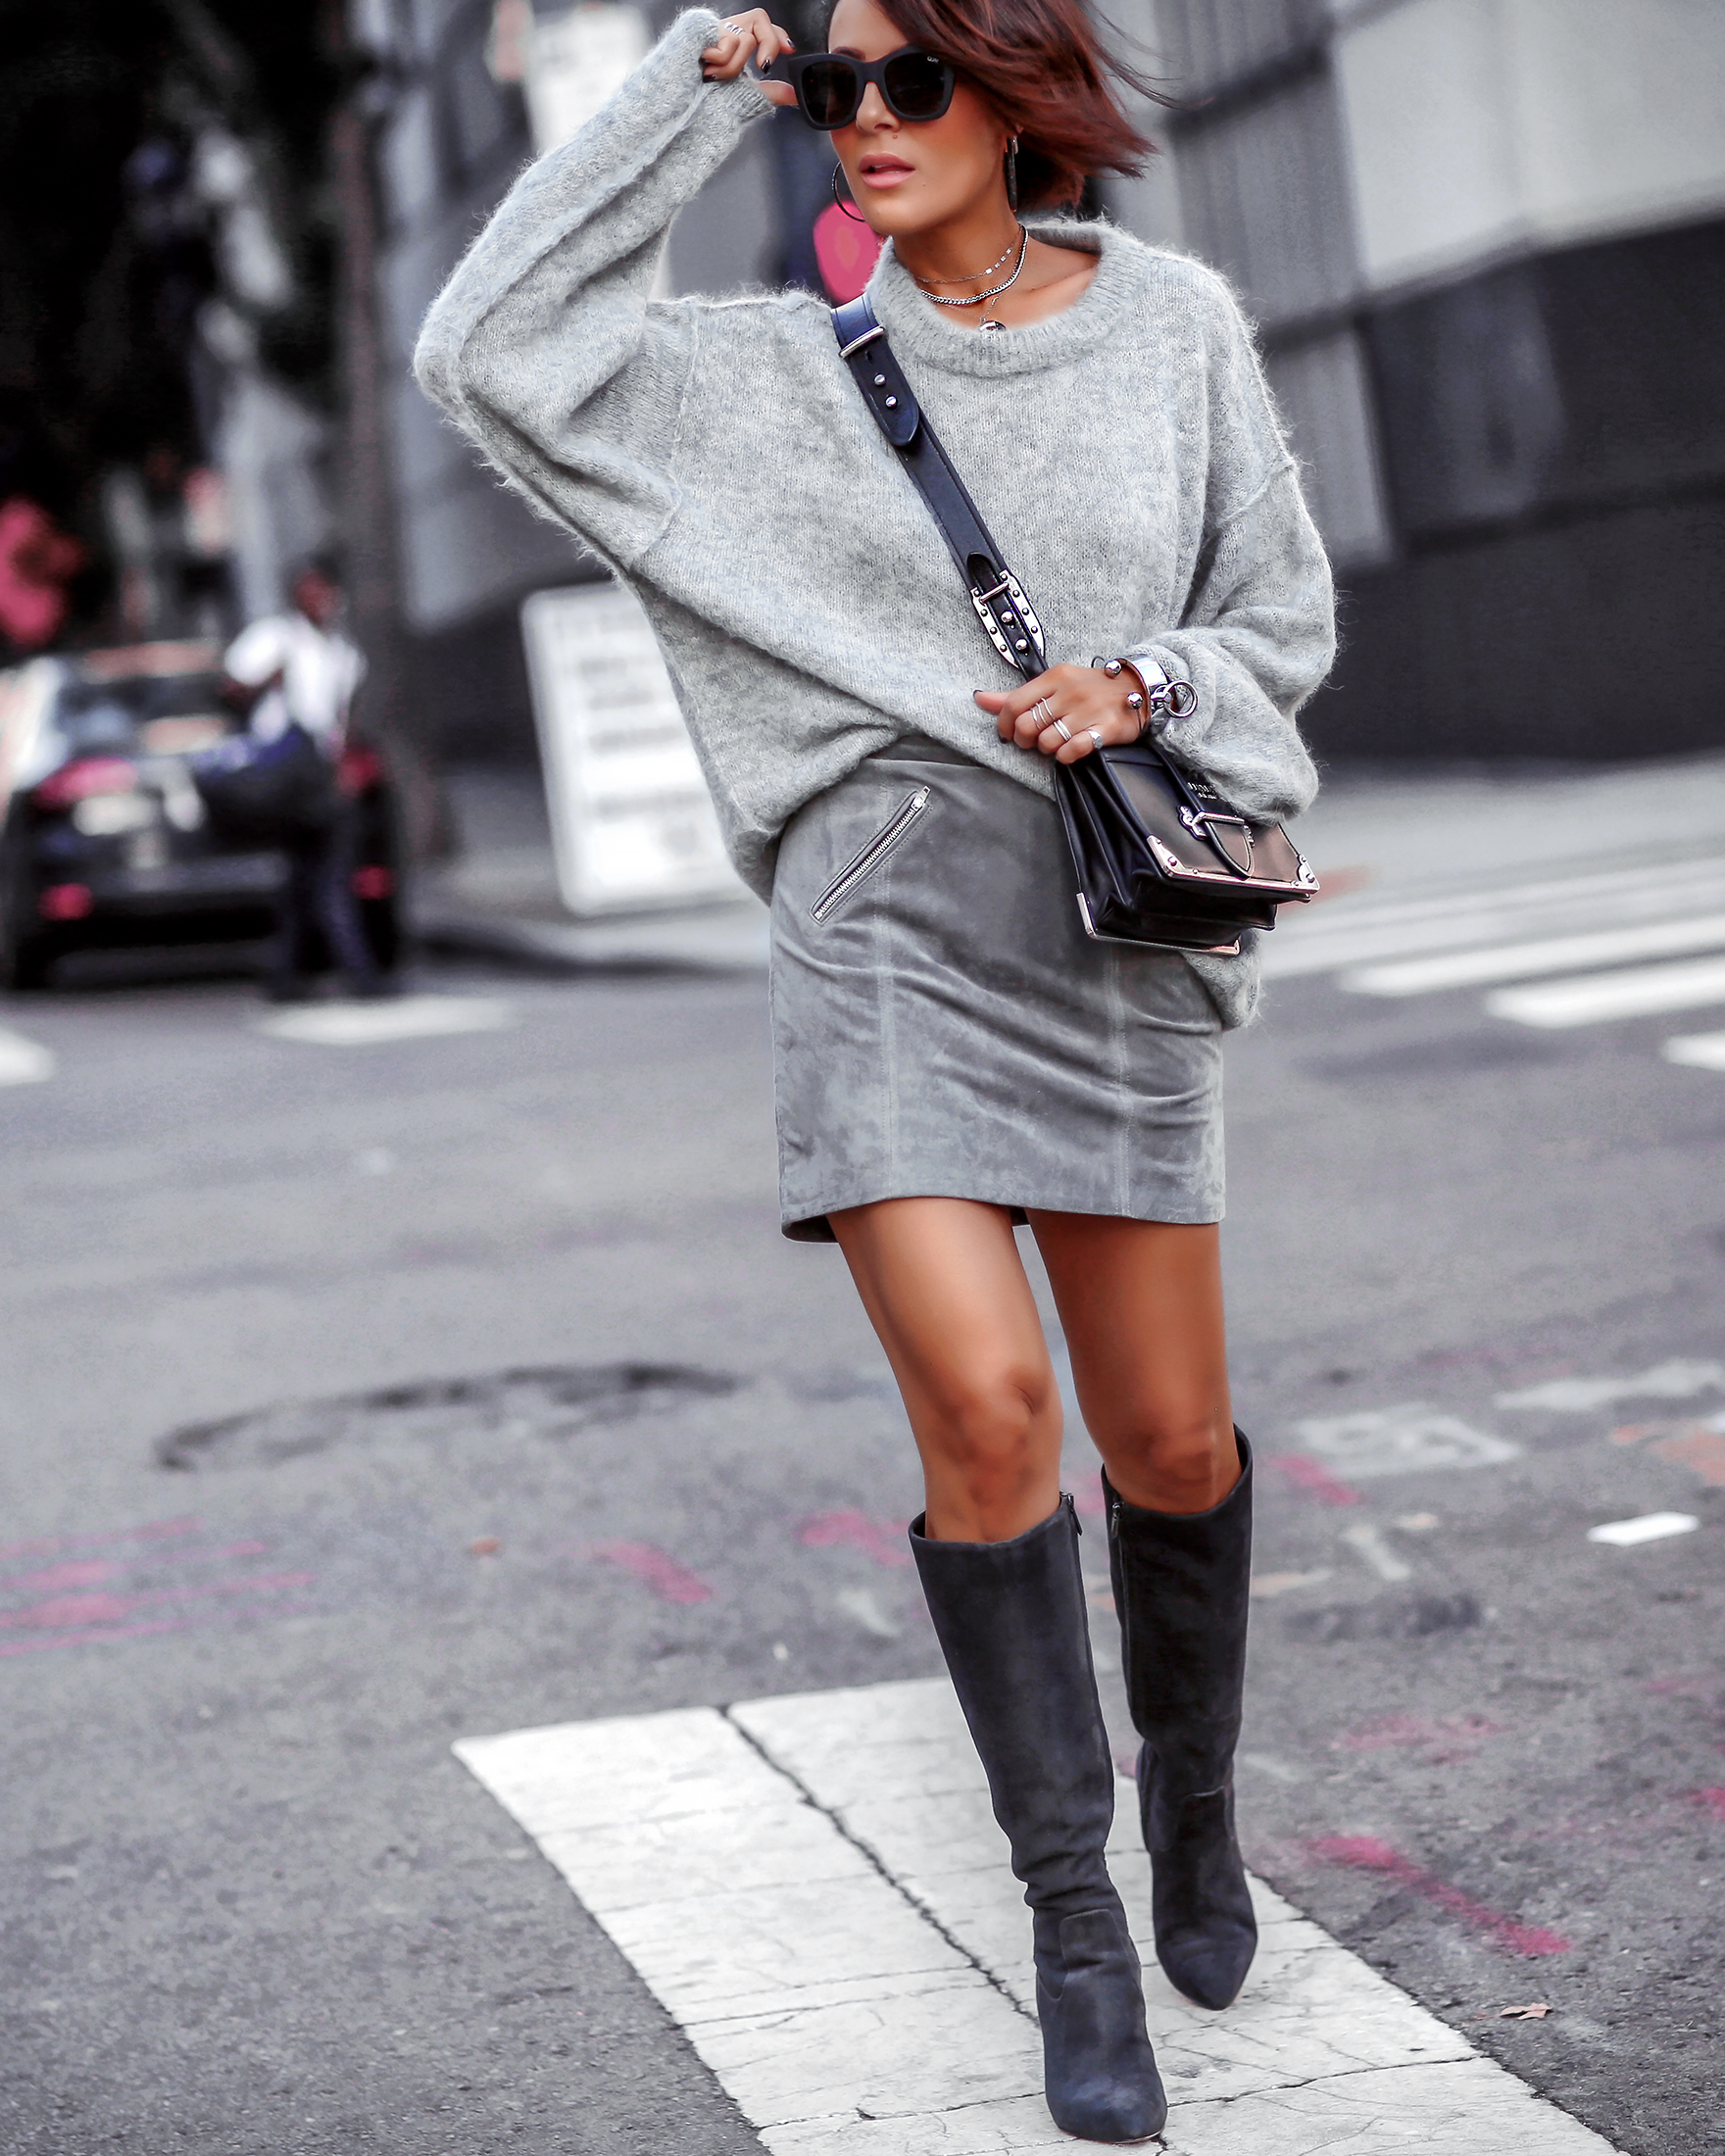 Brunette Woman in All Grey Monochrome Fall Fashion Knee High Boots